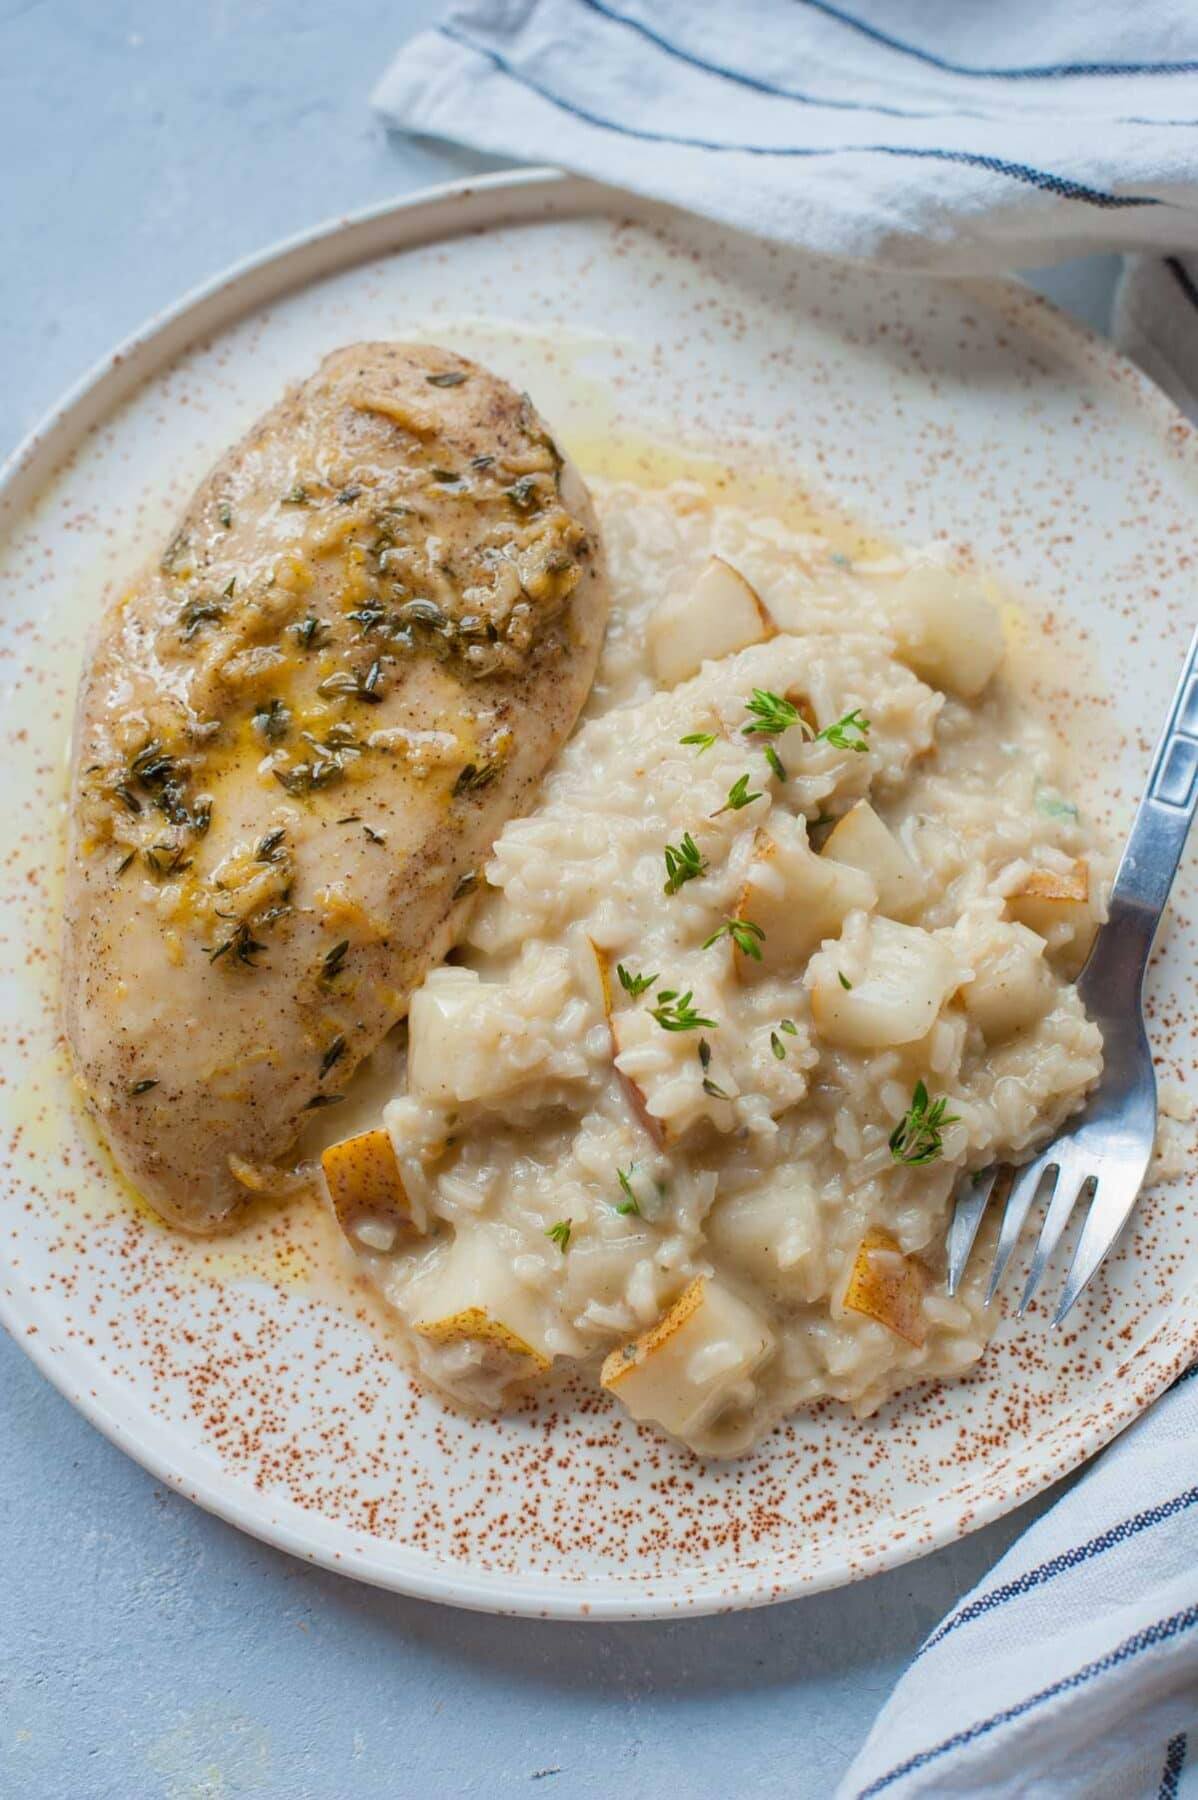 Pear risotto with lemon thyme chicken breast on a white plate.